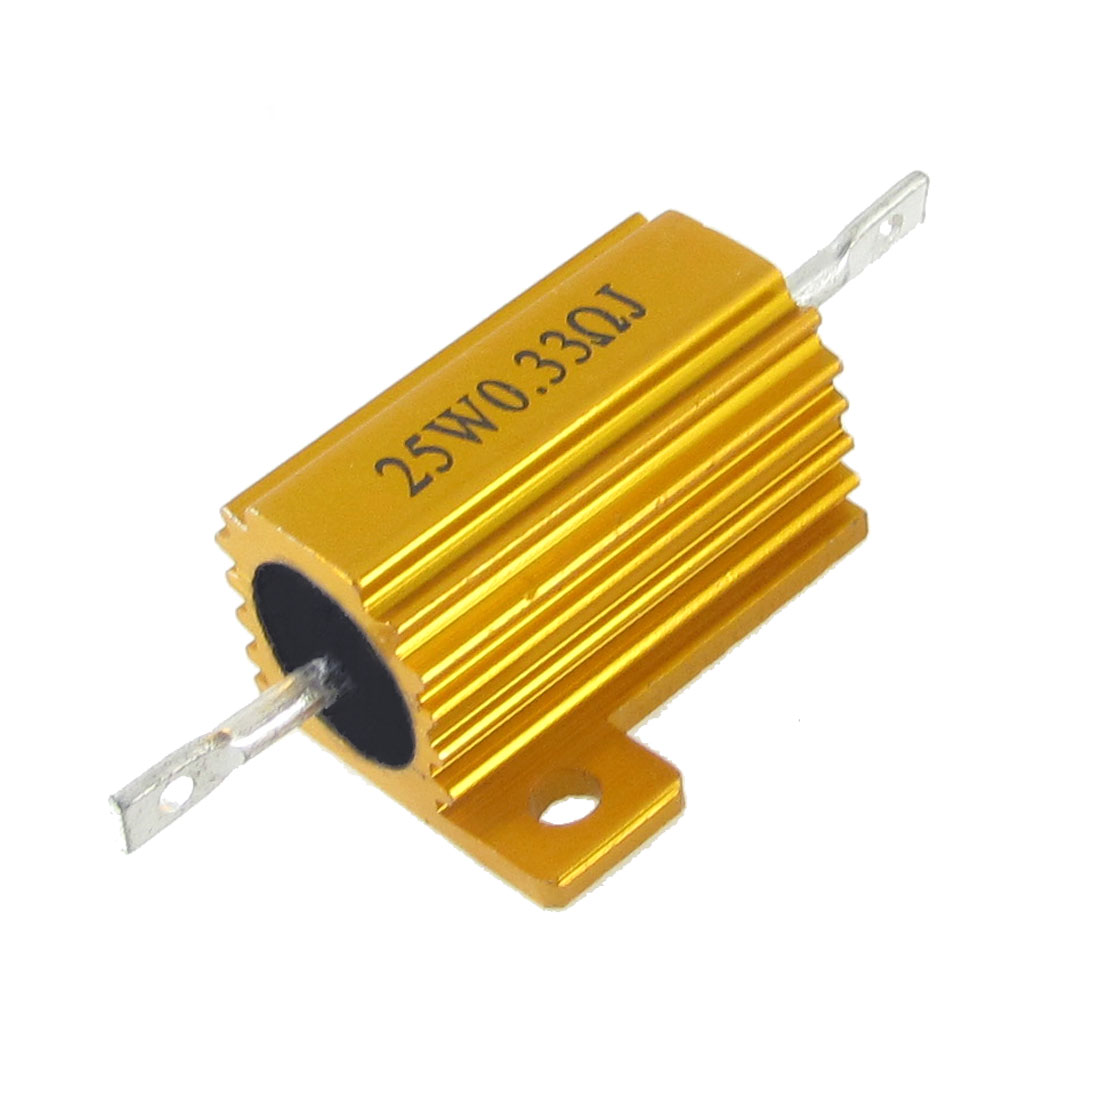 Gold Tone 25 Watt Power 0.33 Ohm 5% Aluminum Casing Wire Wound Resistor